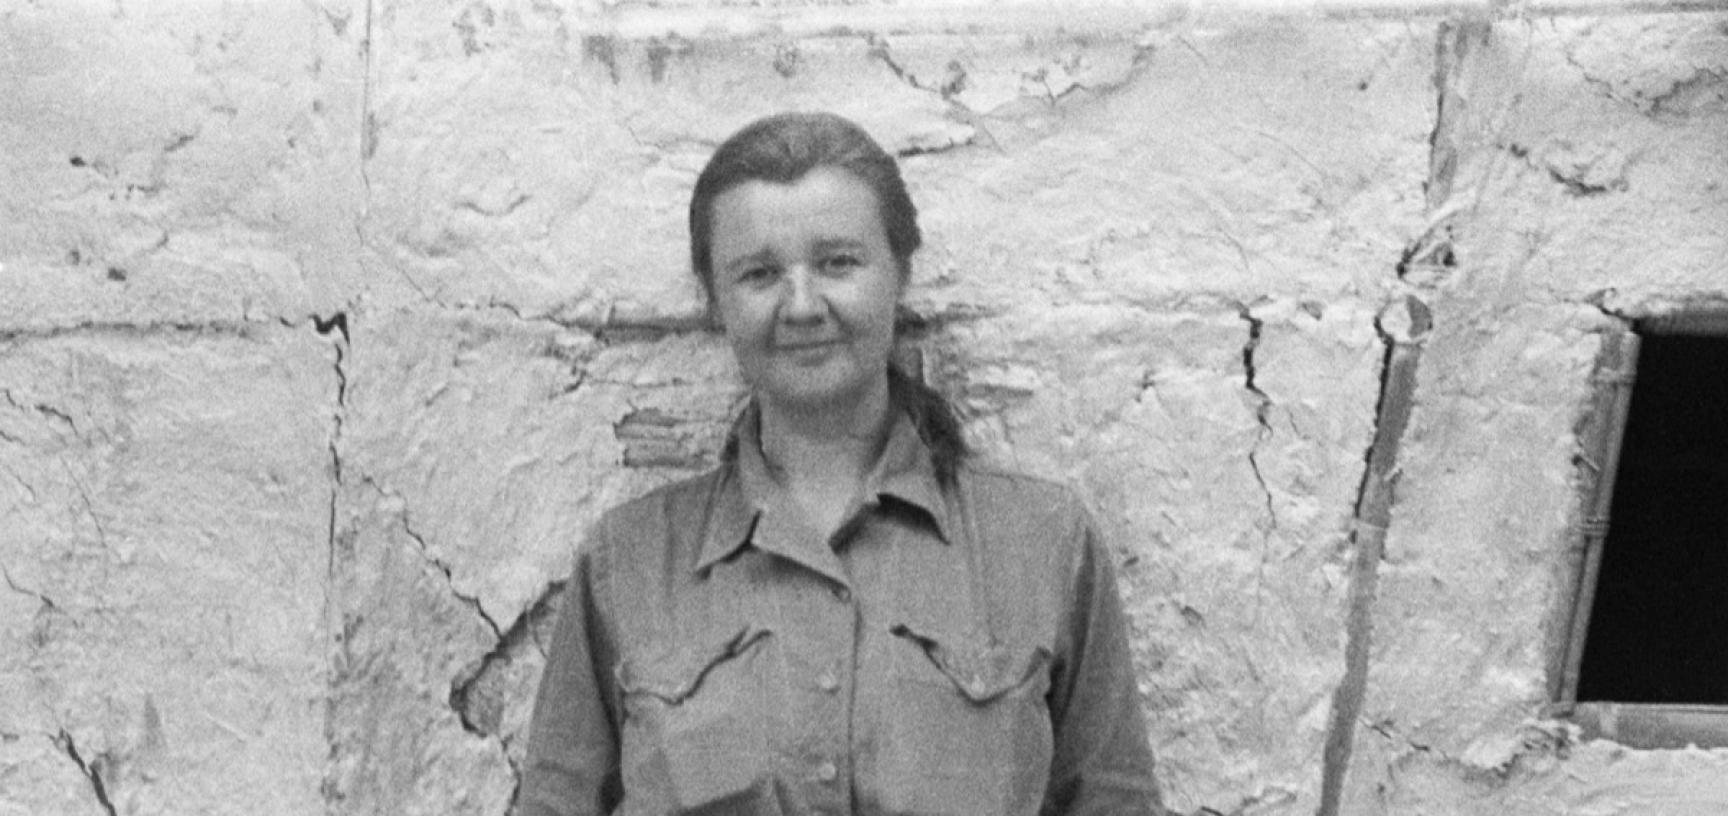 Portrait of Ursula Graham Bower taken in Arunachal Pradesh, India, circa 1947–1948. Photographer unknown. Negative donated by Ursula Violet Graham Bower to the Pitt Rivers Museum in 1985. (Copyright Pitt Rivers Museum, University of Oxford. Accession Numb